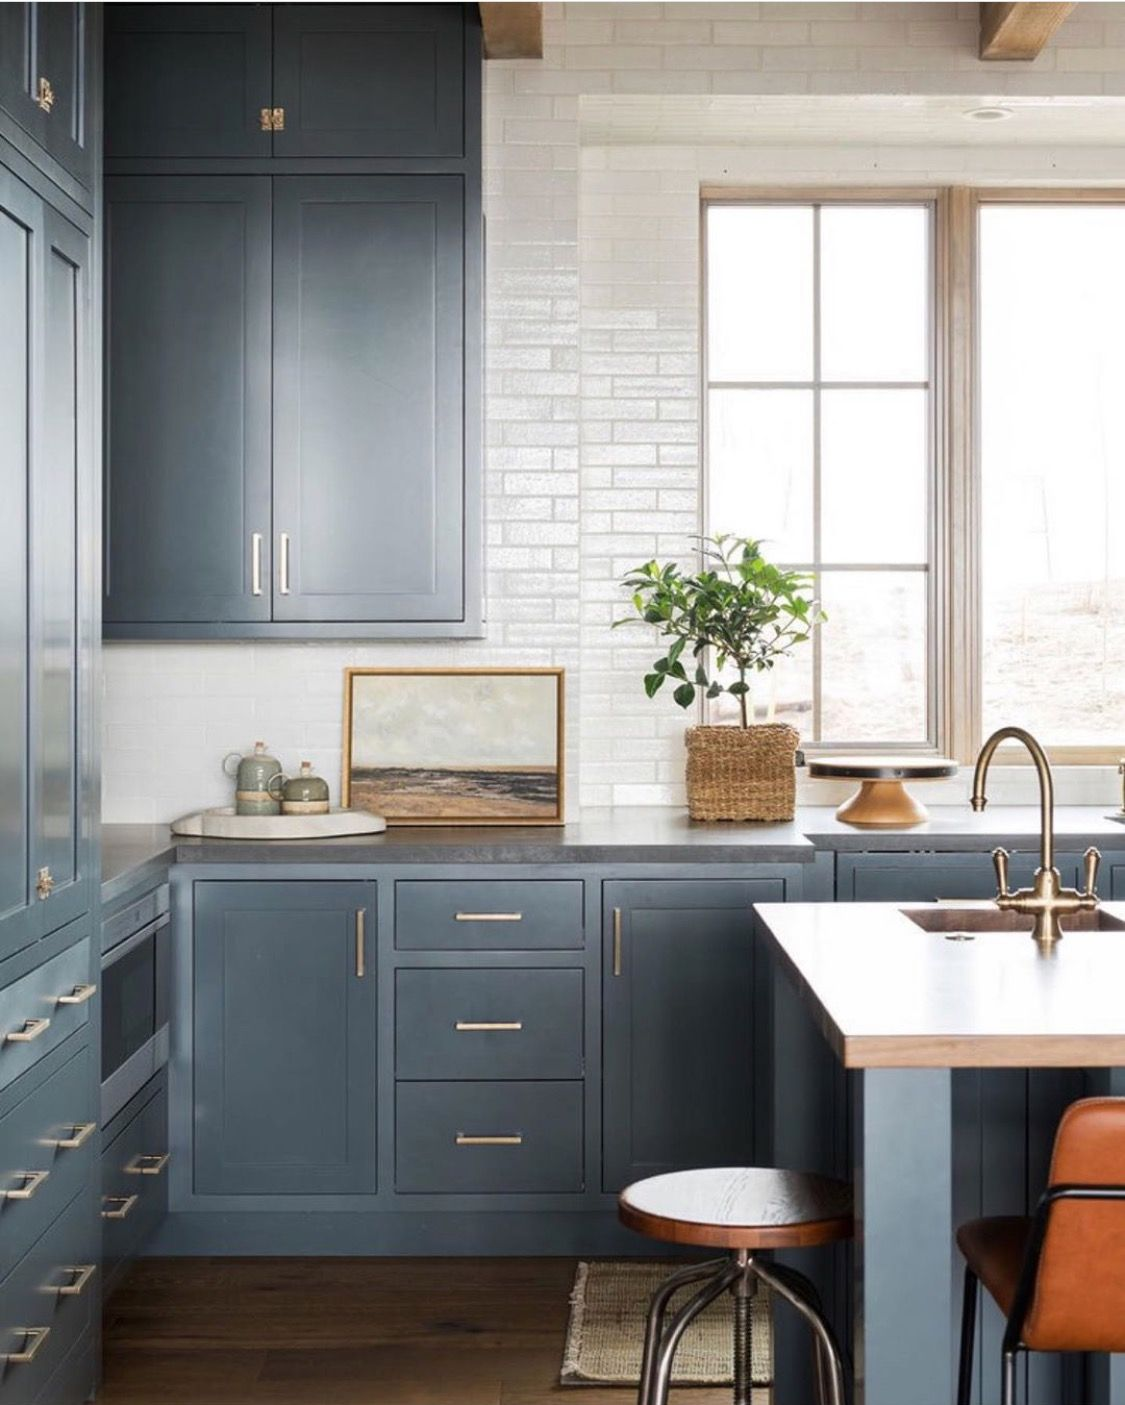 Pin By Kelsey Holohan On House Remodel Kitchen Counter Decor Kitchen Design Kitchen Remodel